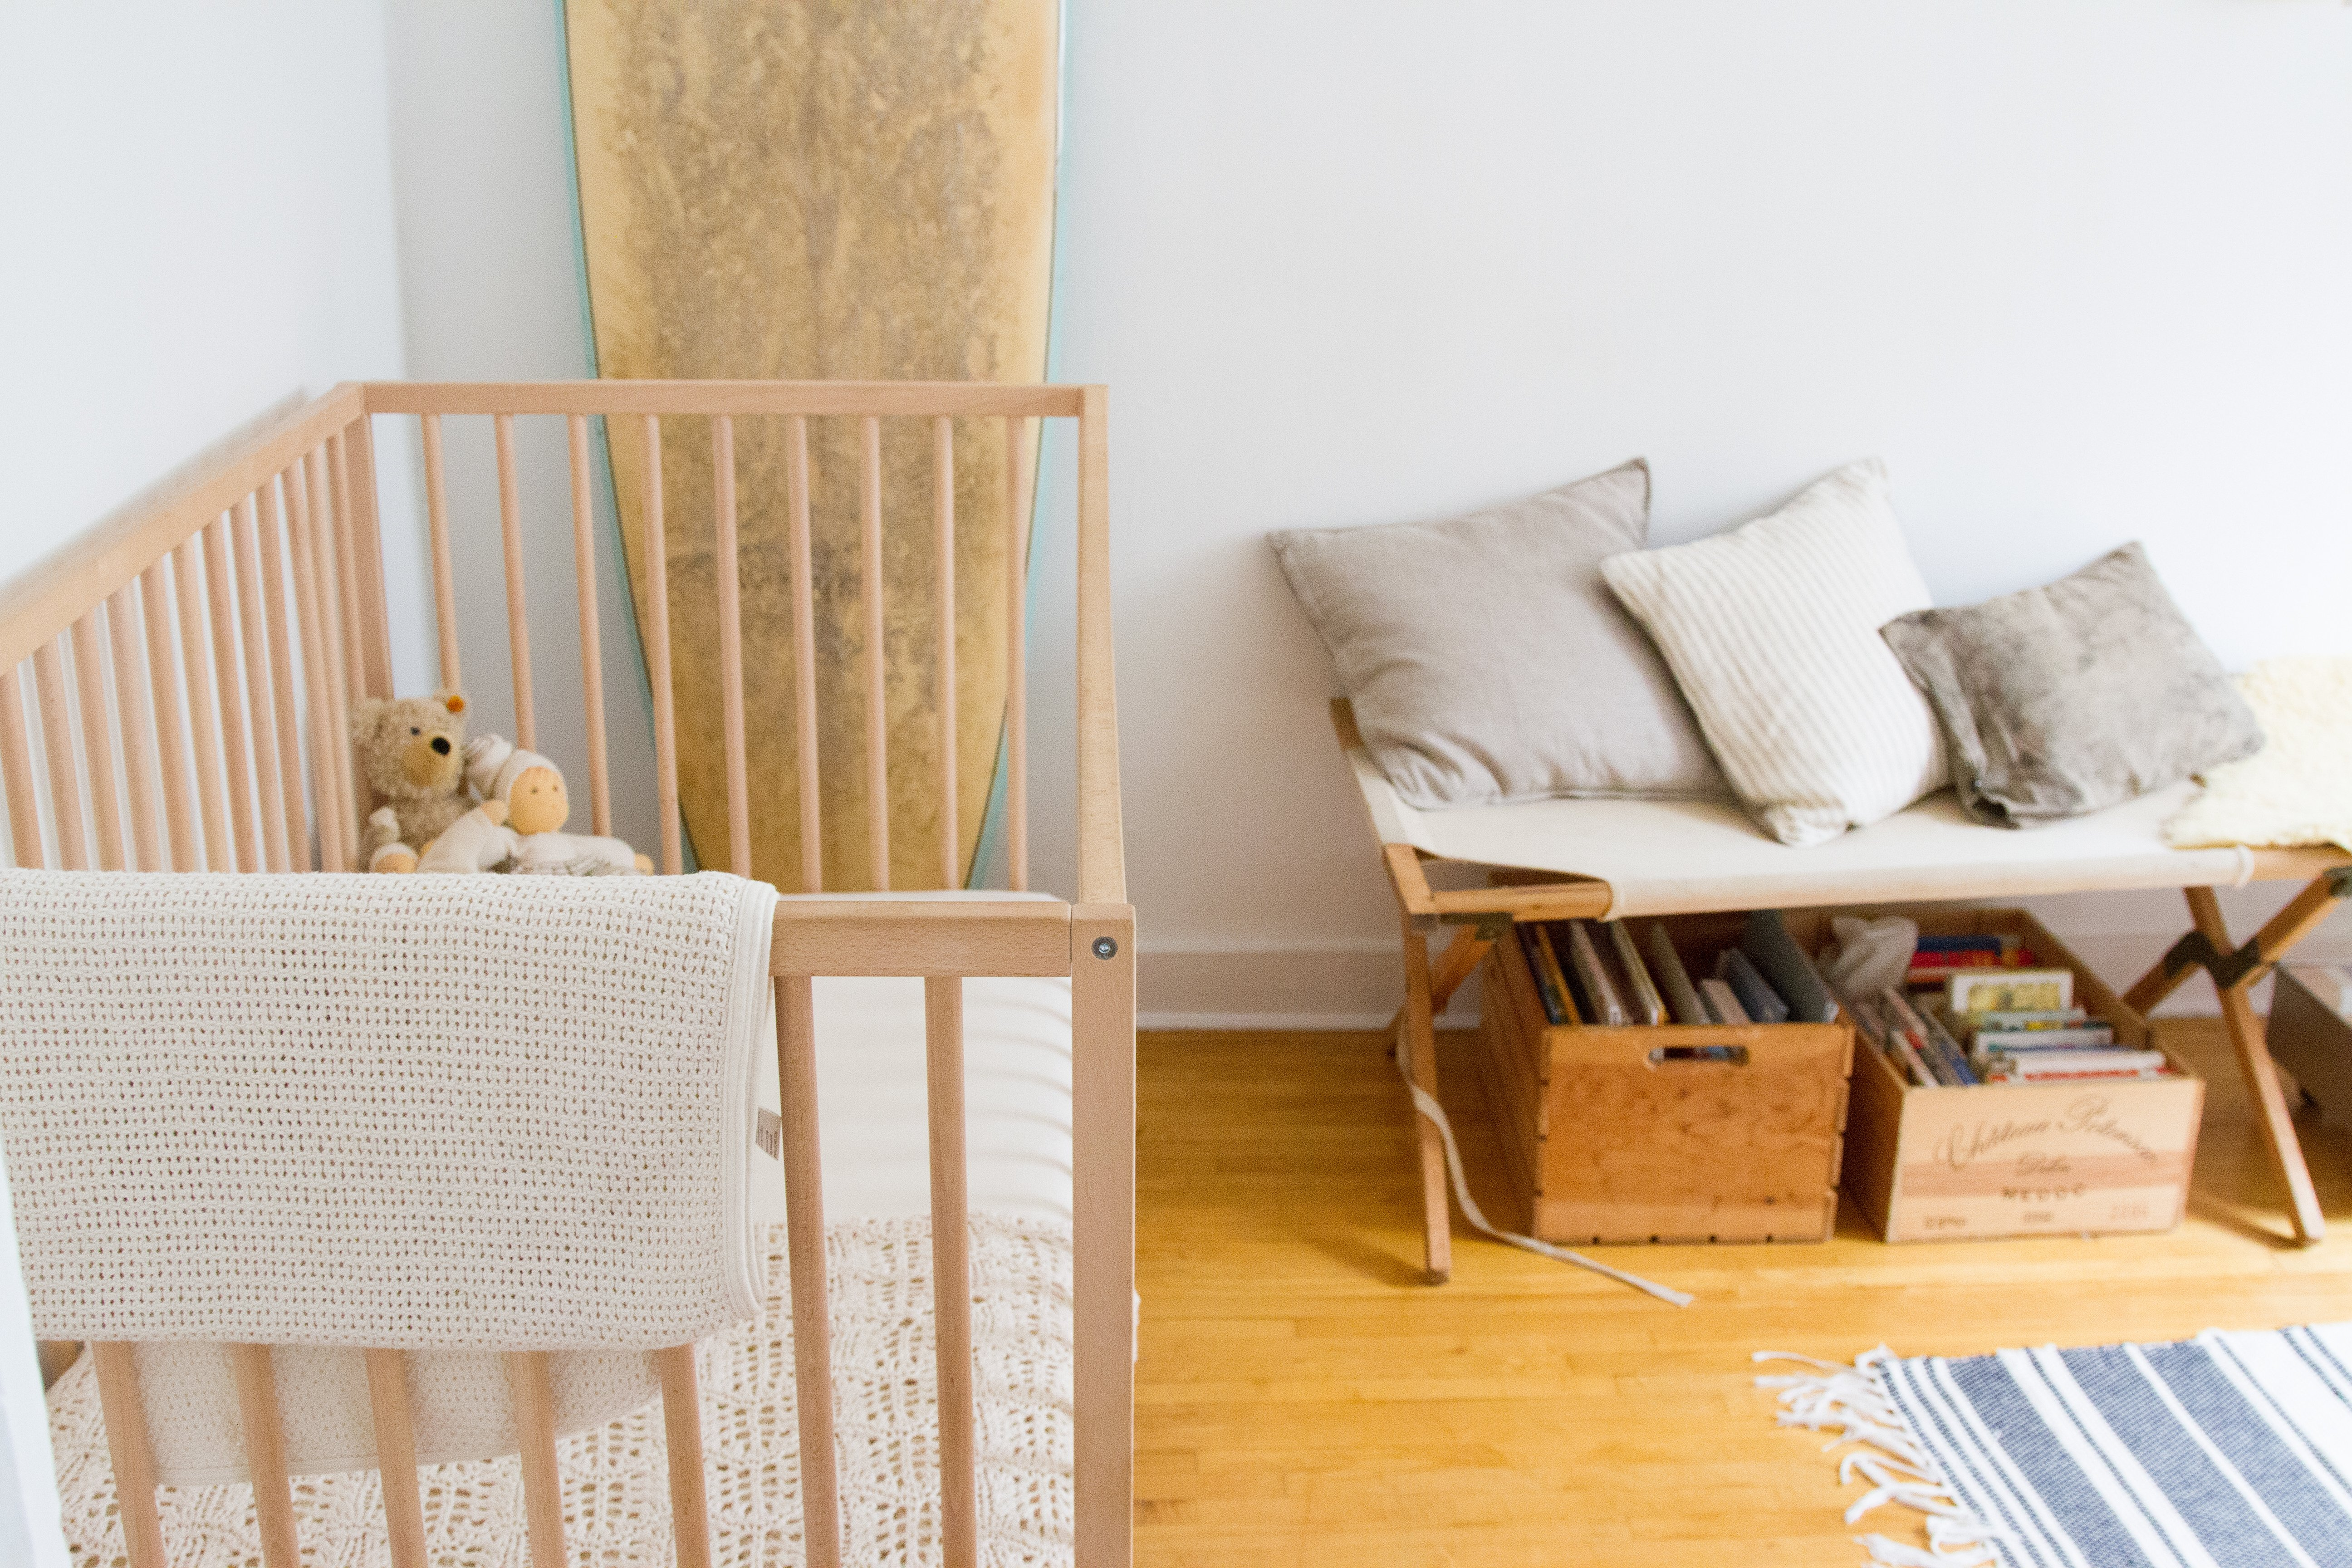 Baby cribs living spaces - 14 Tips For Living In A Small Space